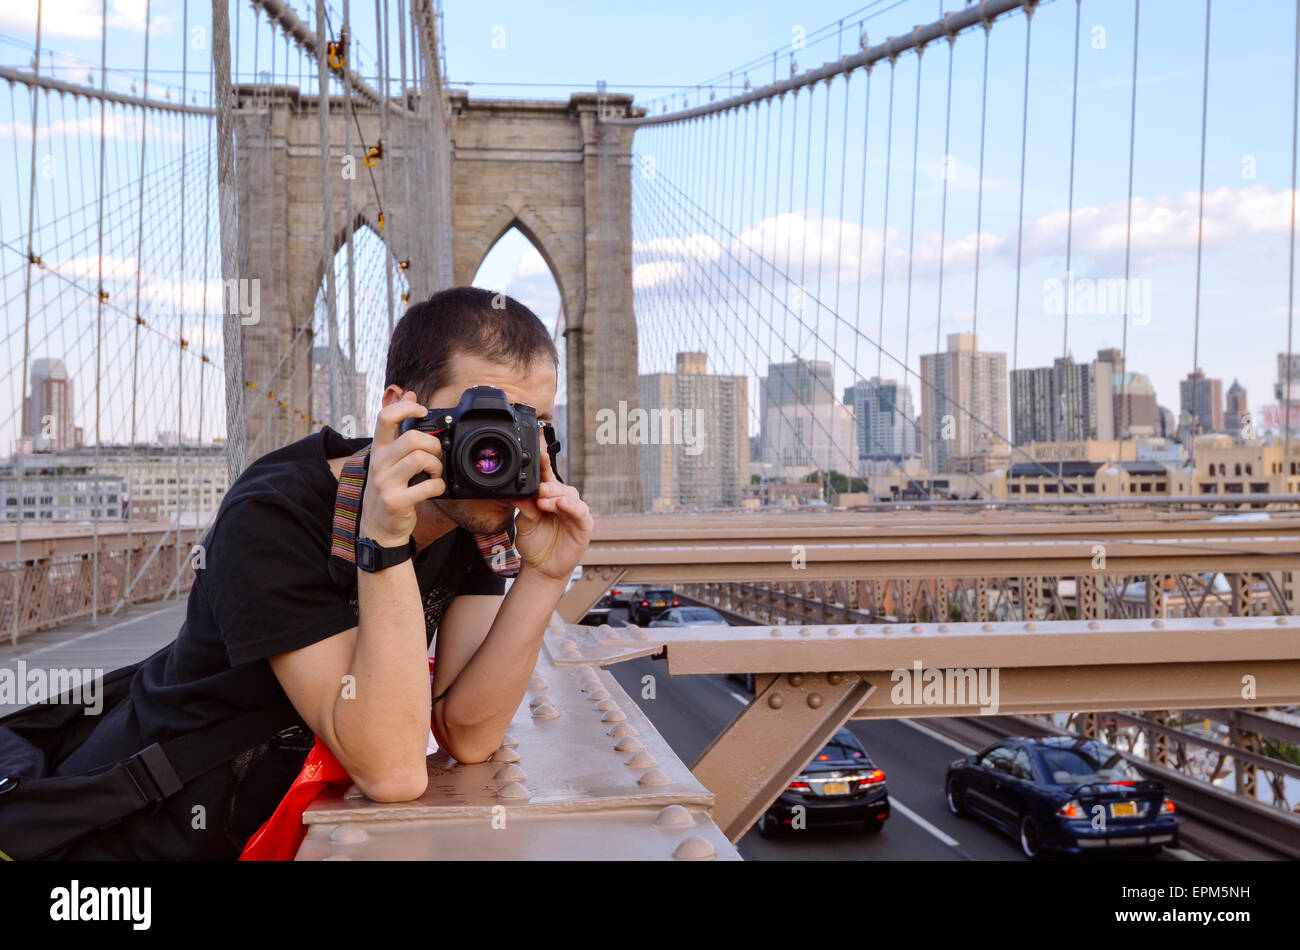 USA, New York, traveller taking pictures of Manhattan from Brooklyn Bridge in the evening - Stock Image